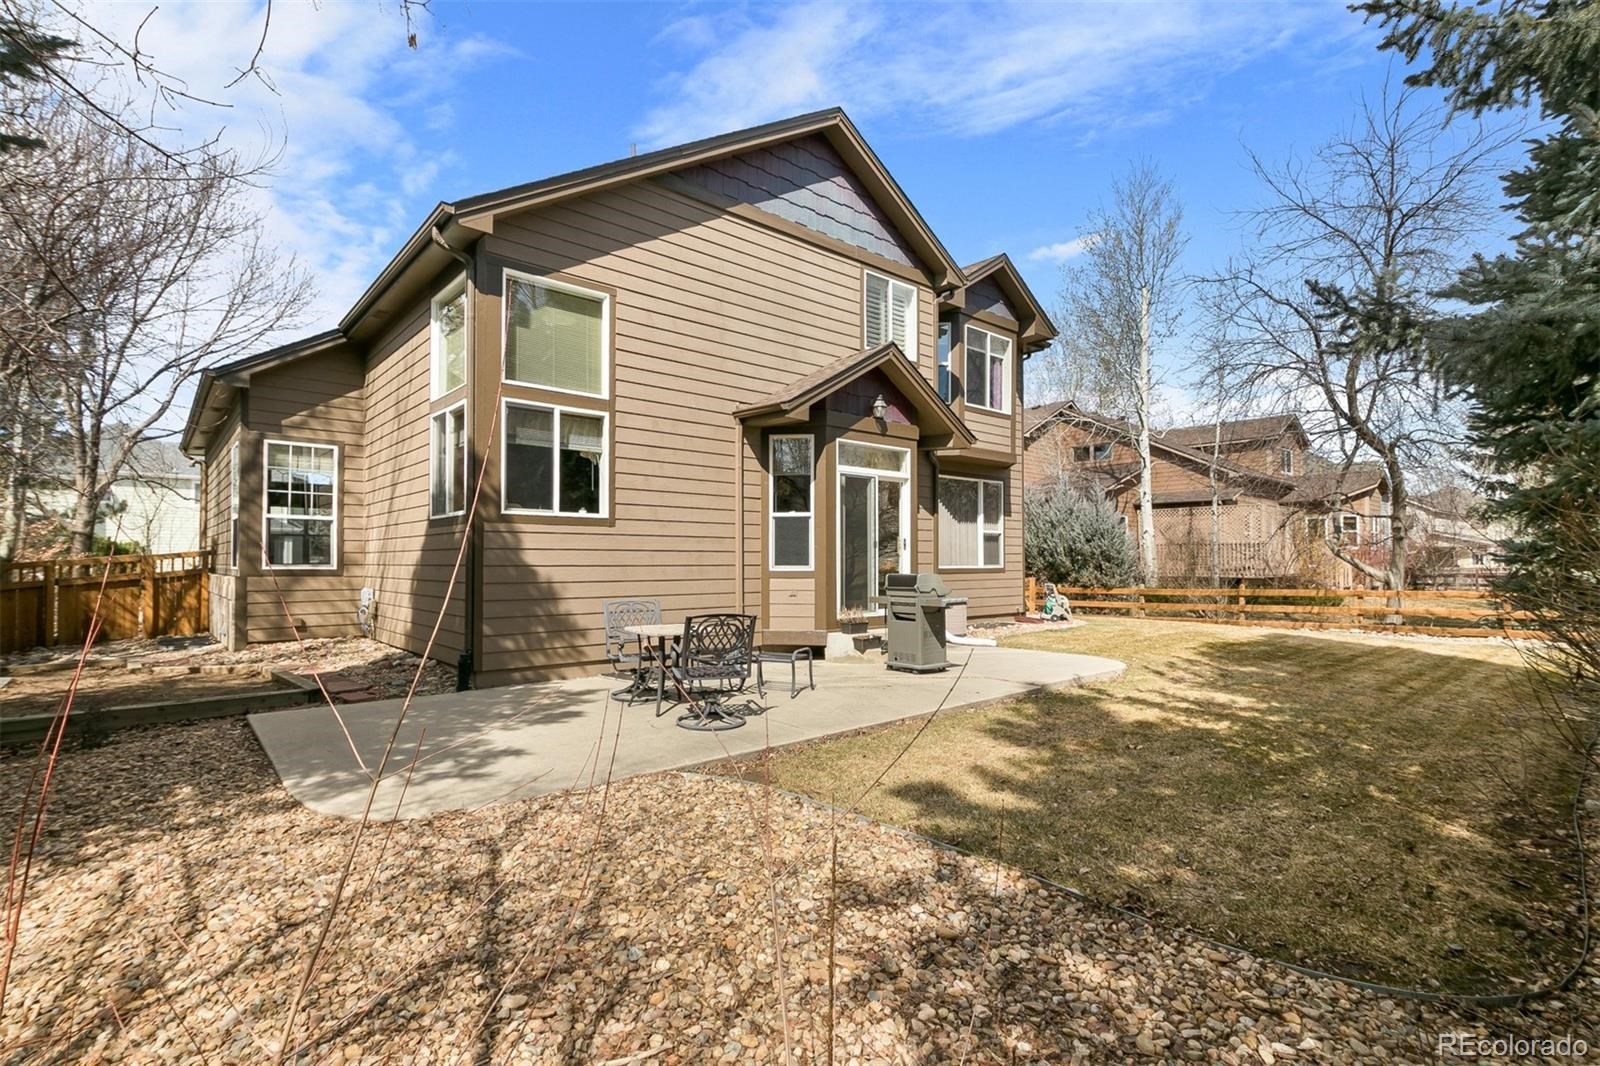 MLS# 3491087 - 35 - 2300 Creekside Drive, Longmont, CO 80504